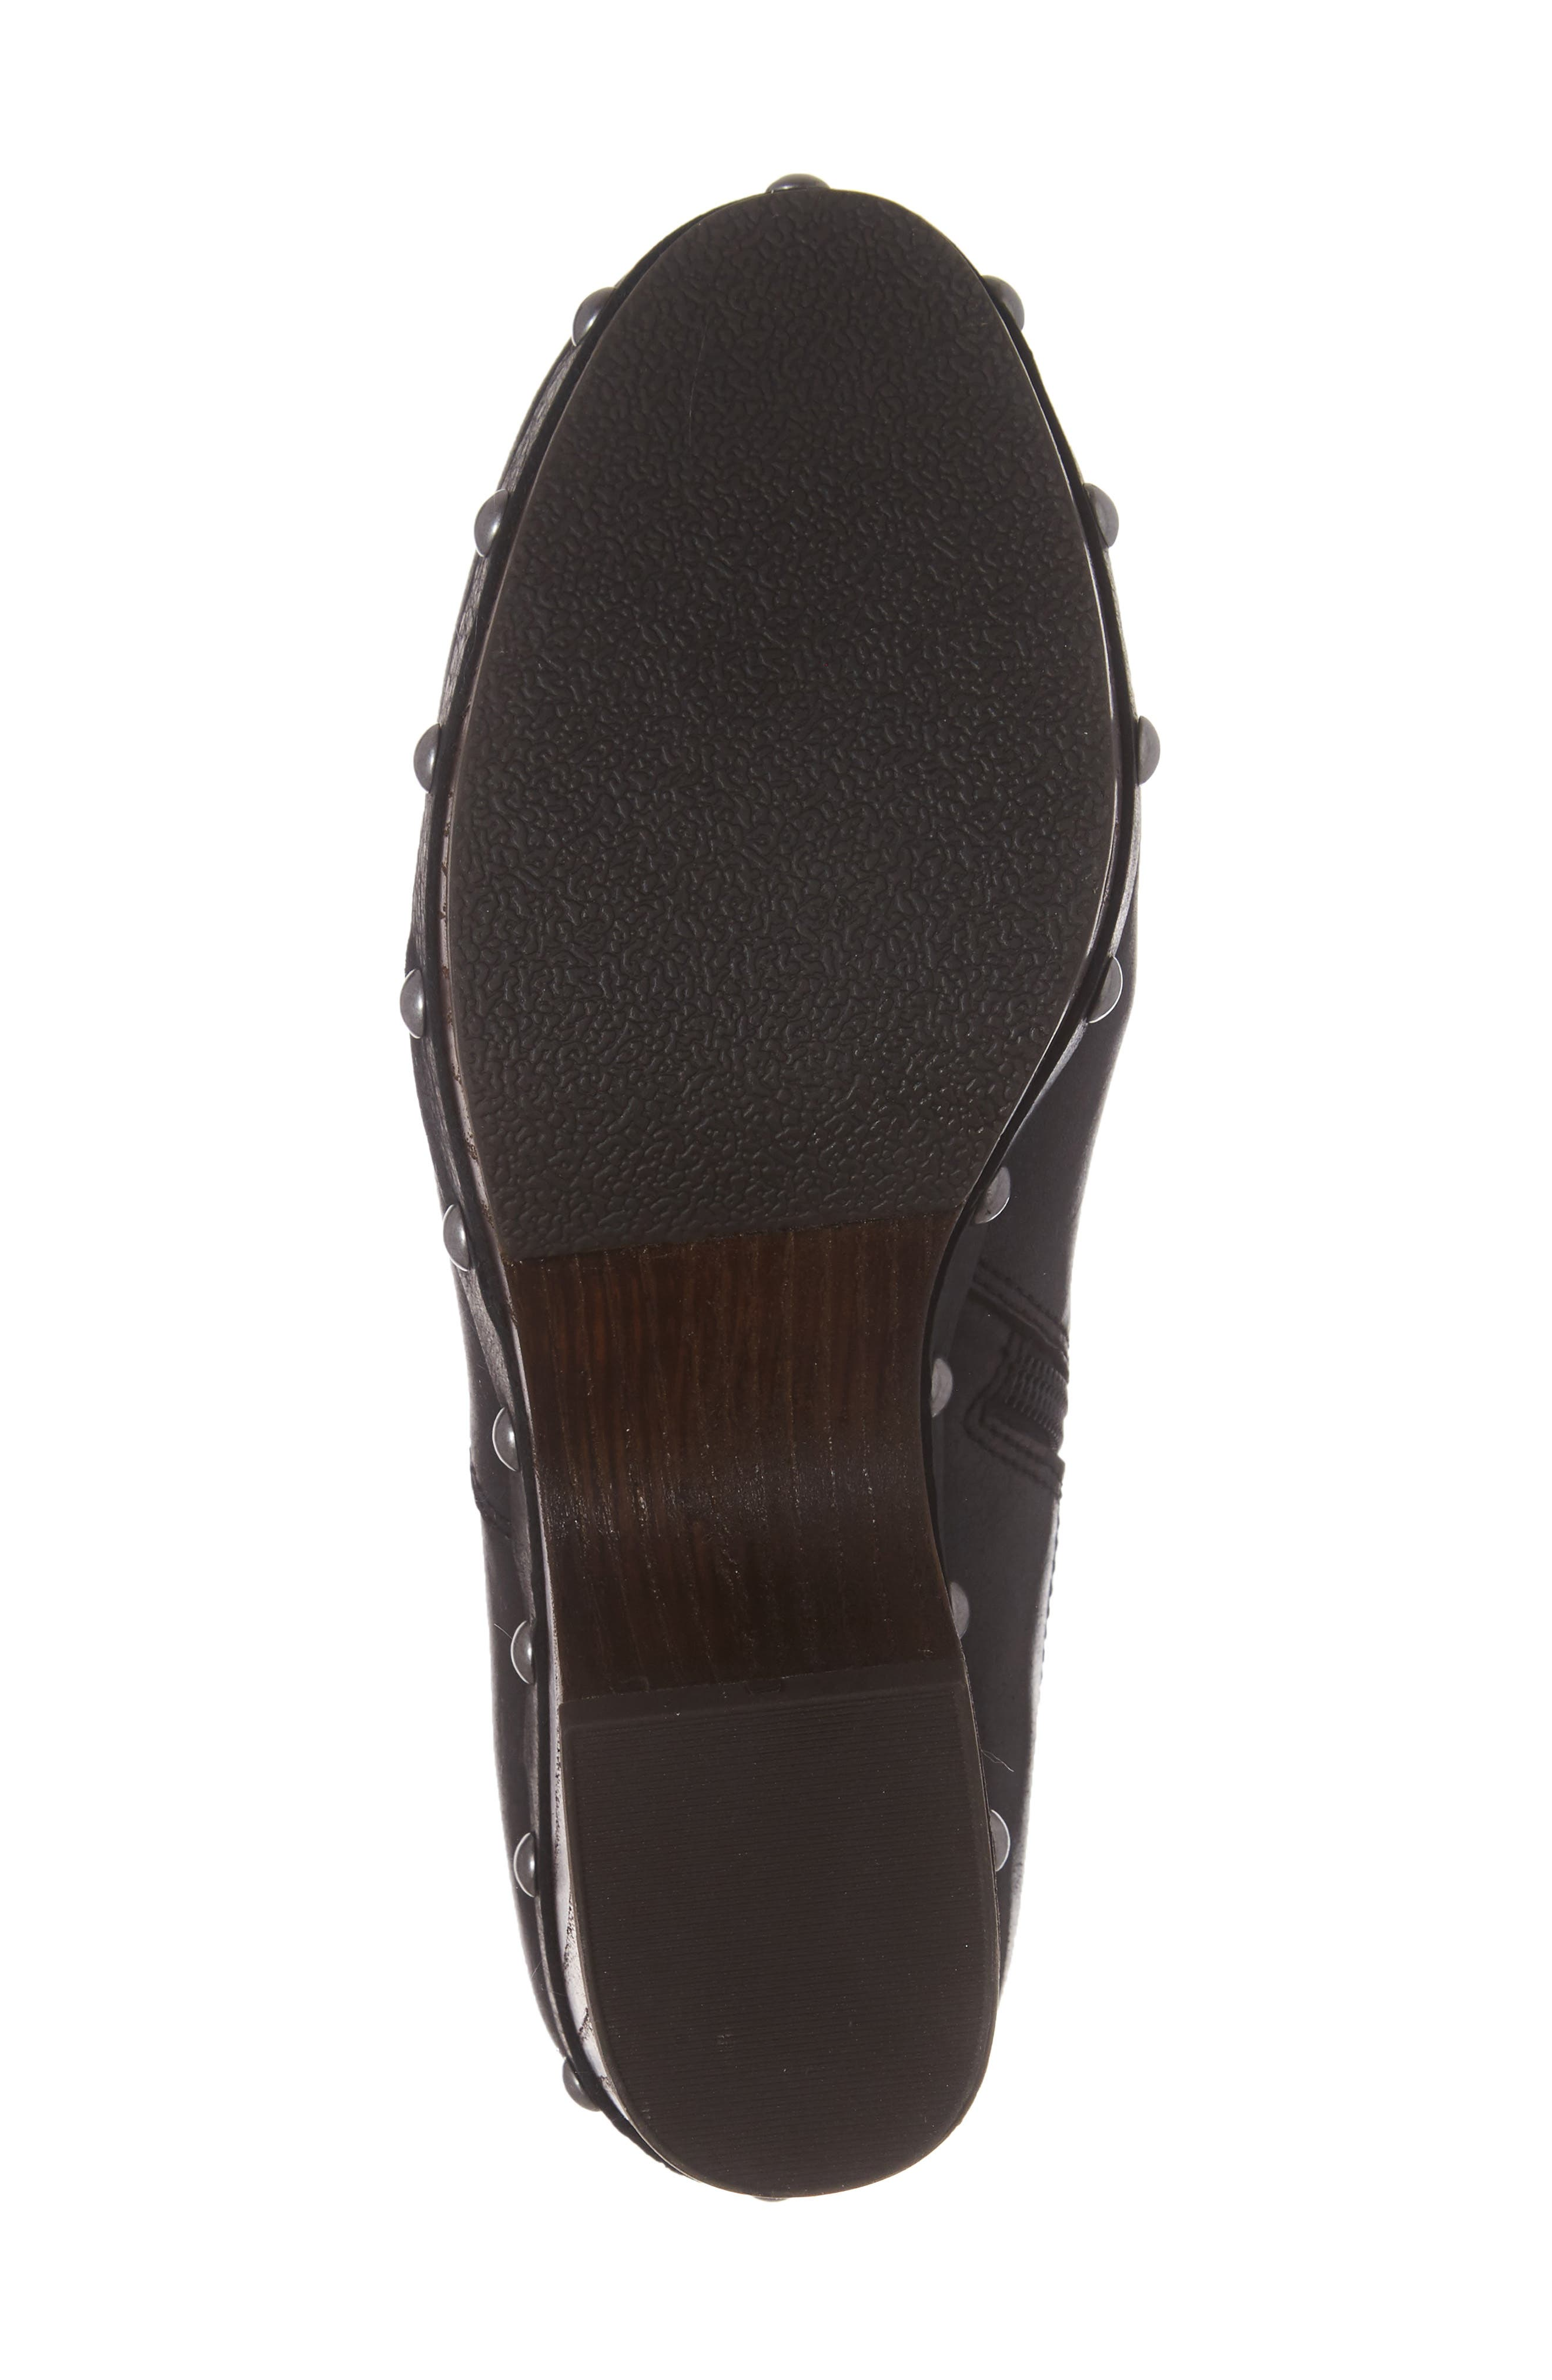 Yasamin Bootie,                             Alternate thumbnail 6, color,                             Black Leather